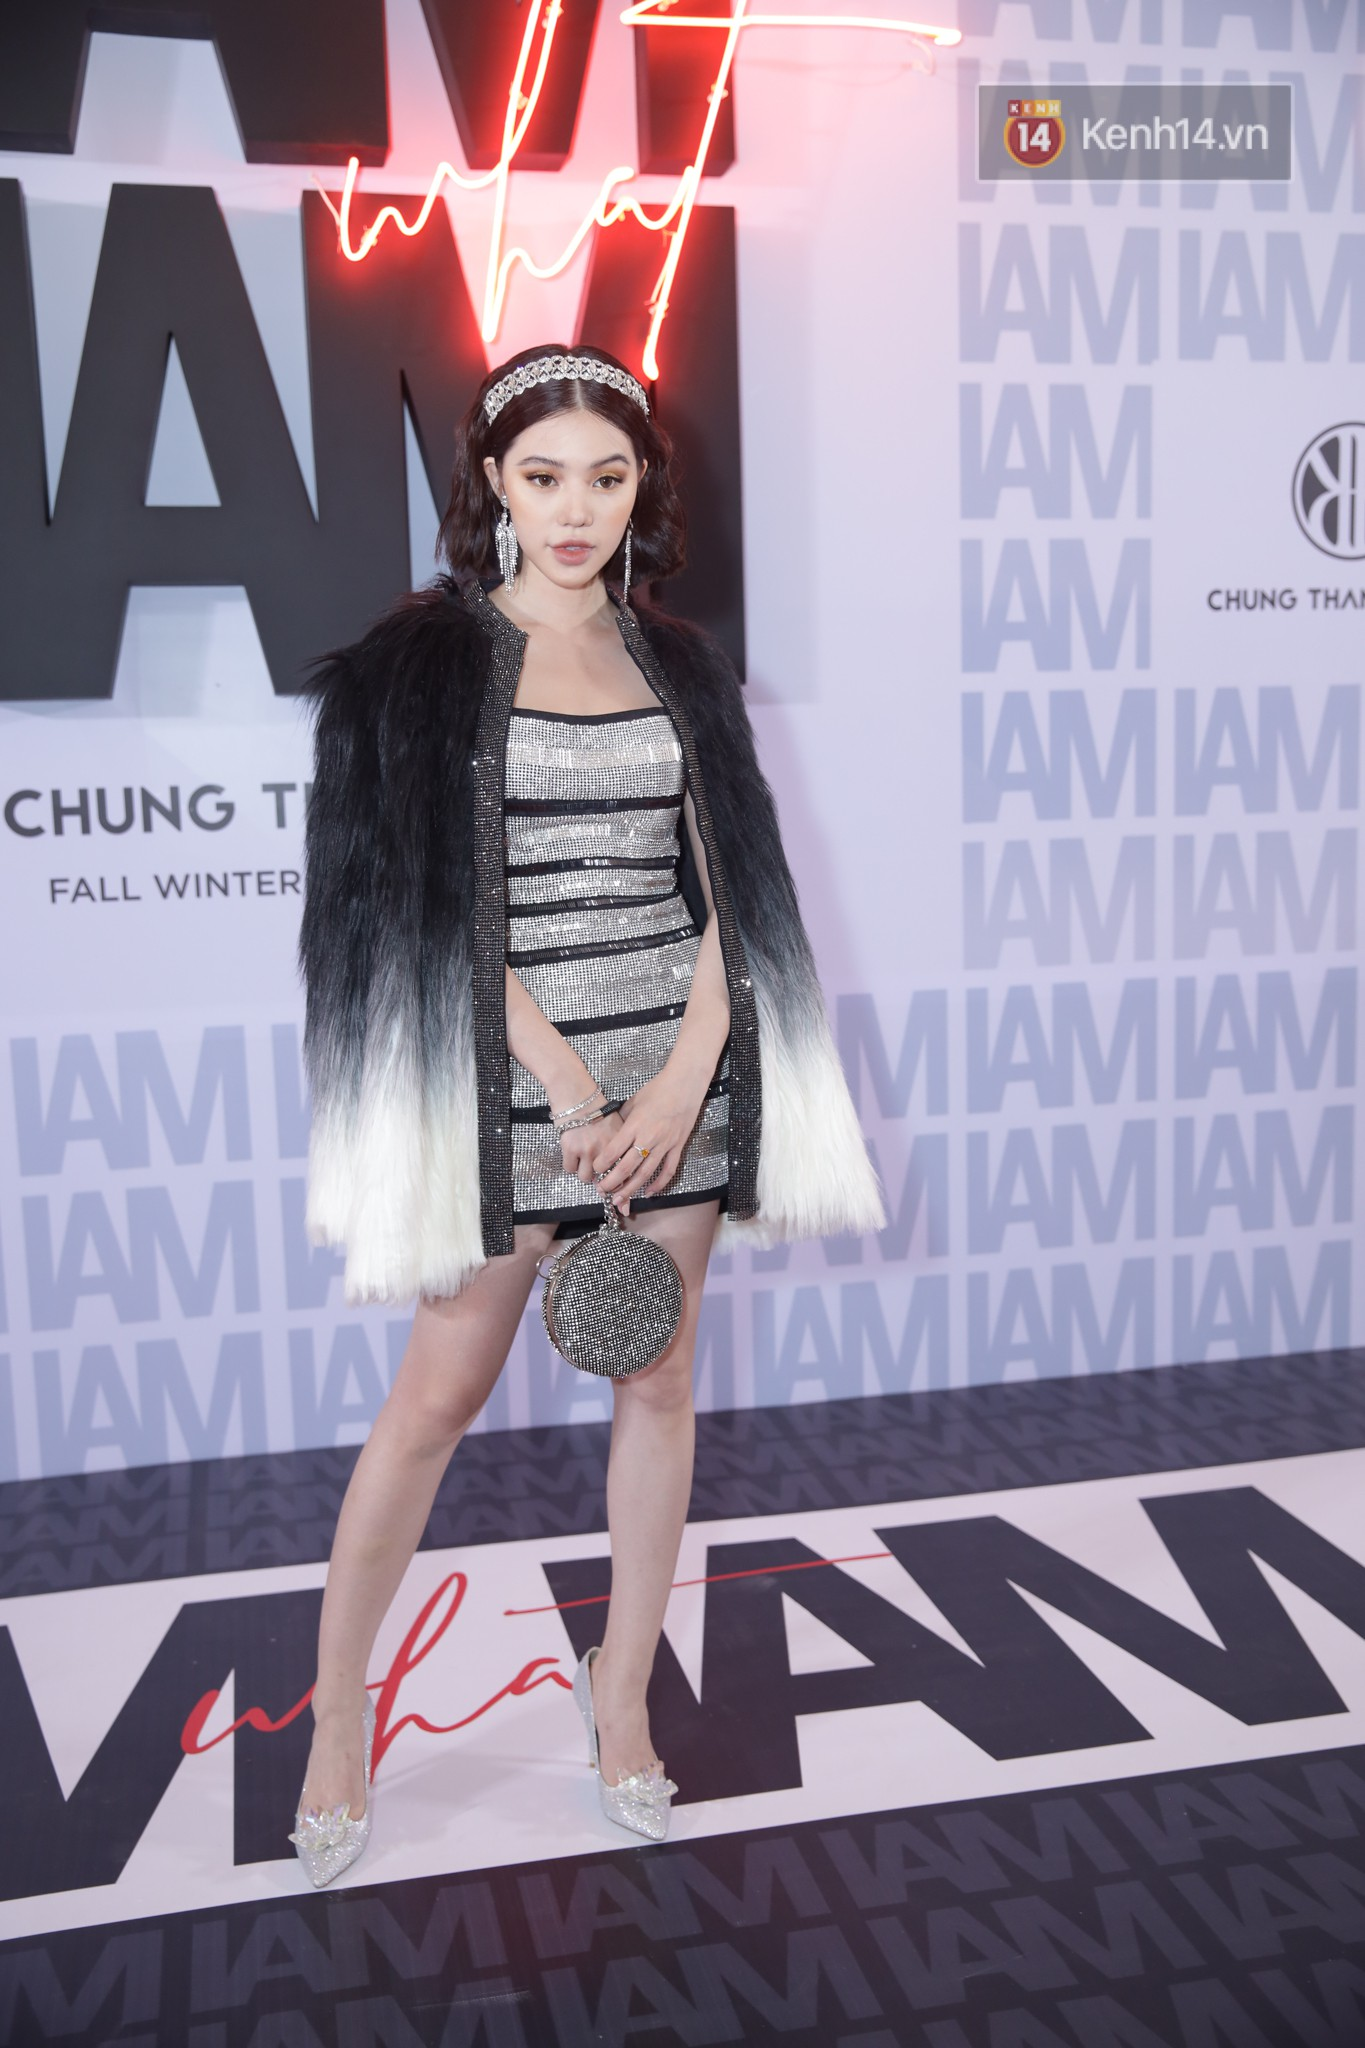 The red carpet Chung Thanh Phong show: it was able to test strange styles, as Quỳnh Anh Shyn caught birds with rain - Photo 4.